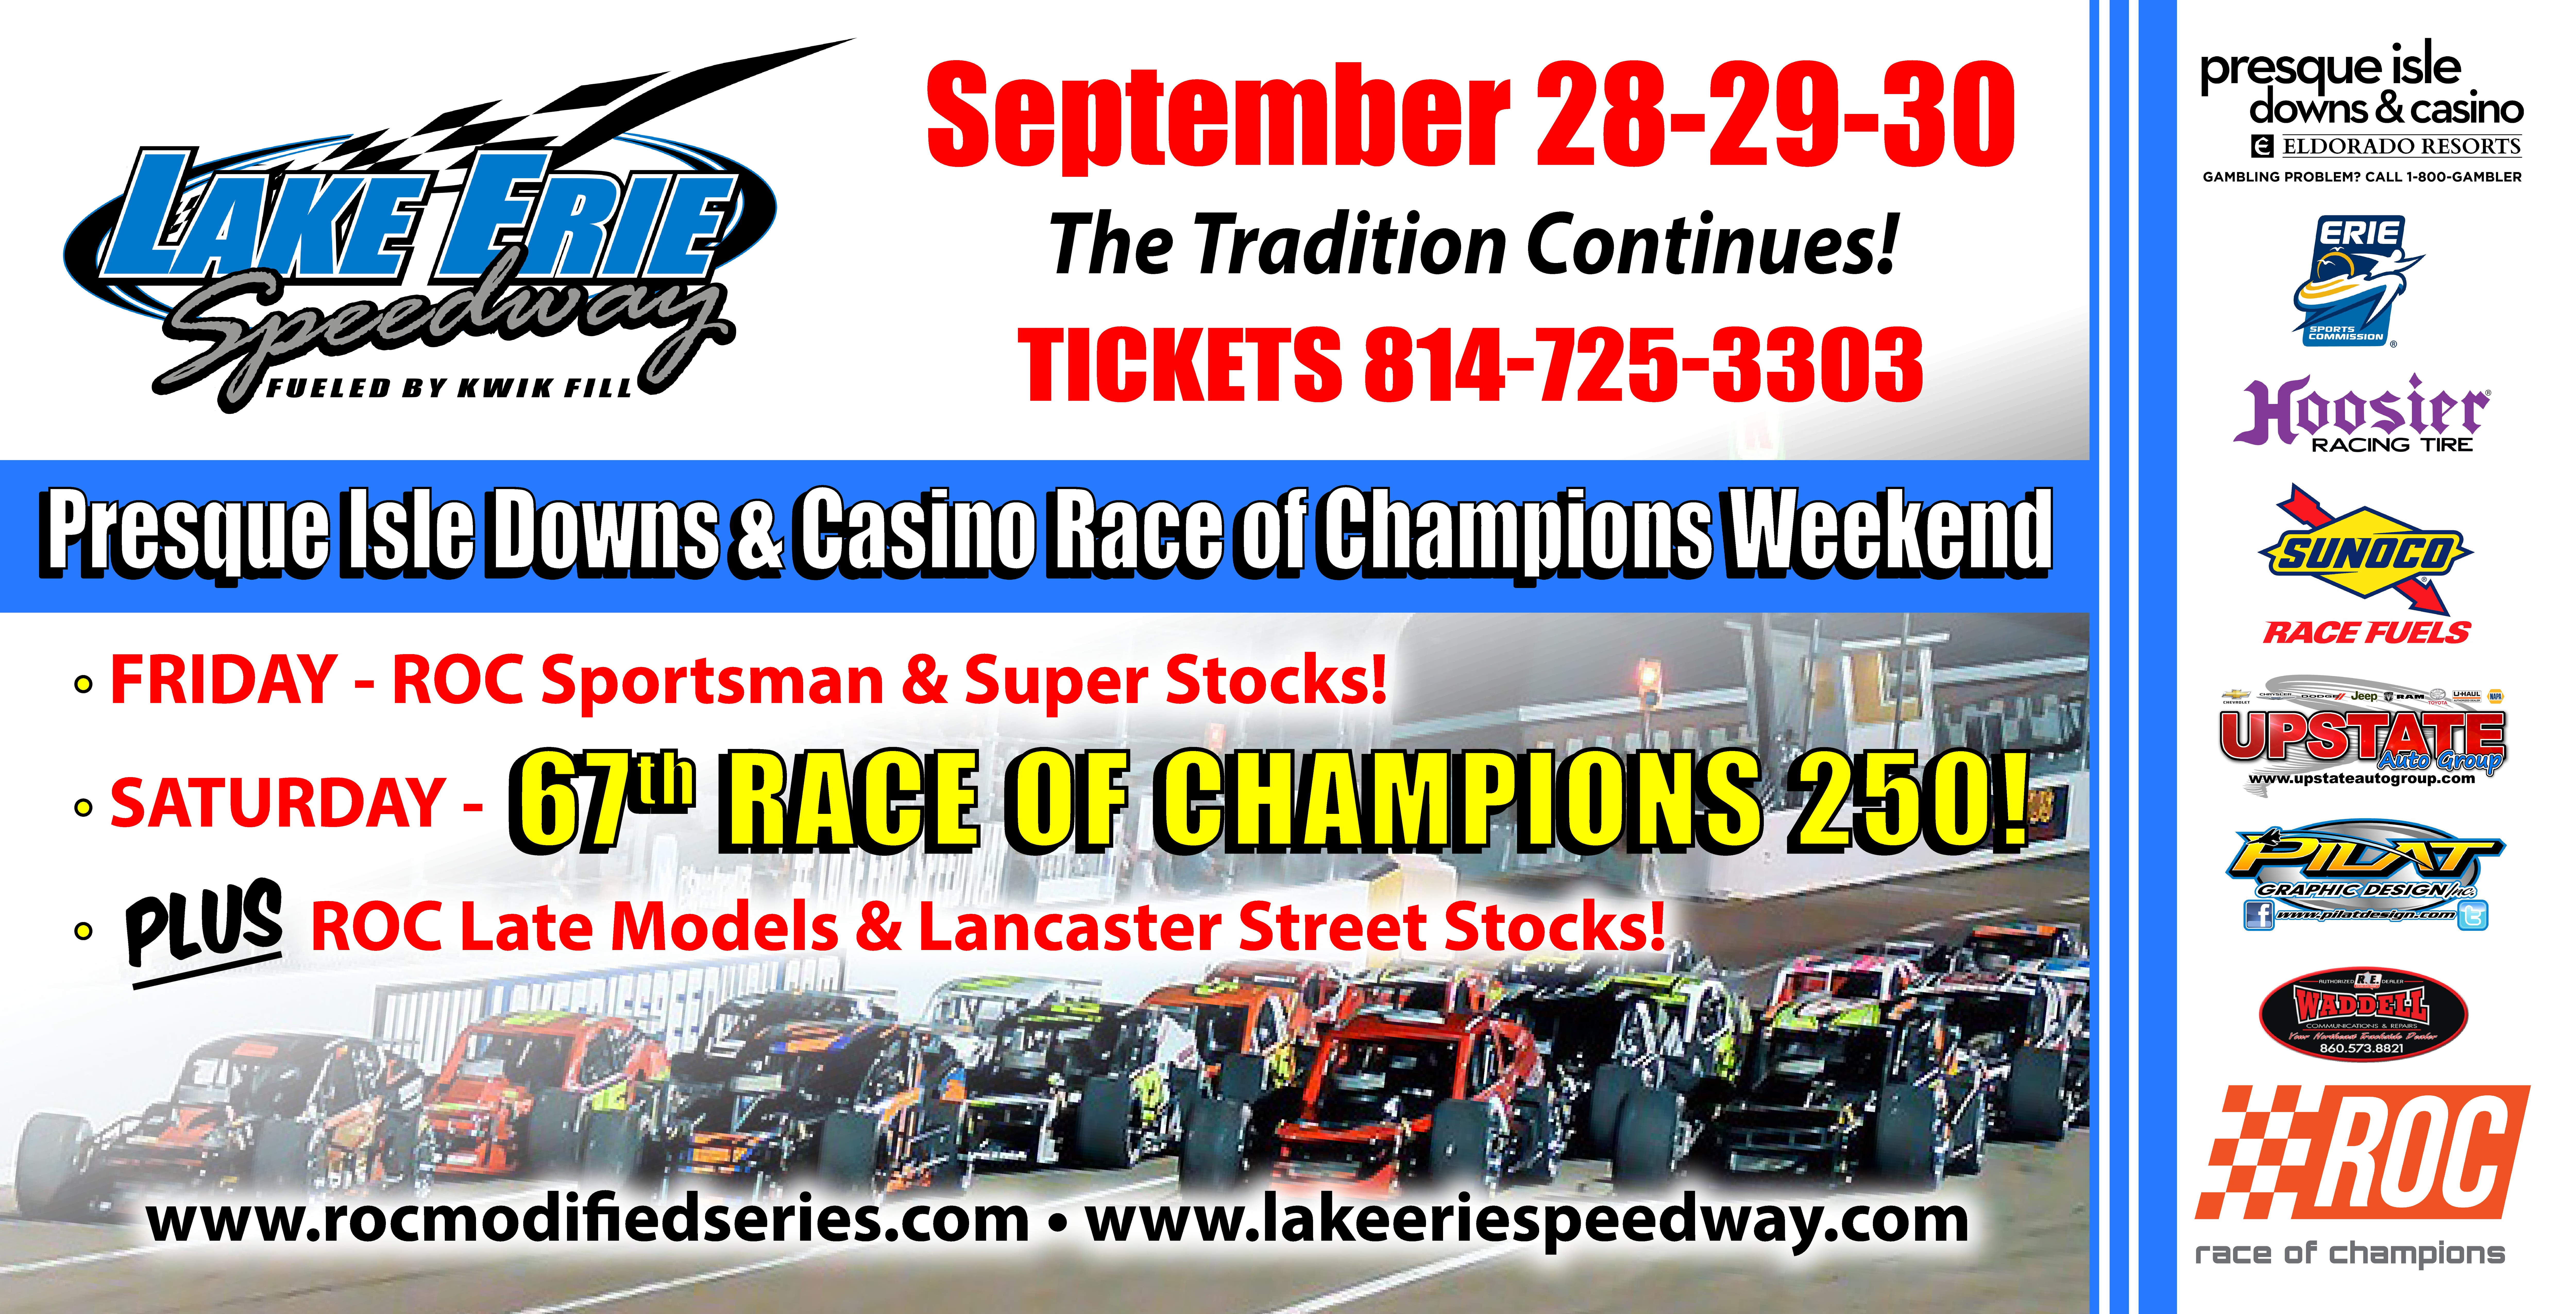 SCHEDULE  SET FOR  PRESQUE ISLE DOWNS & CASINO RACE OF CHAMPIONS WEEKEND